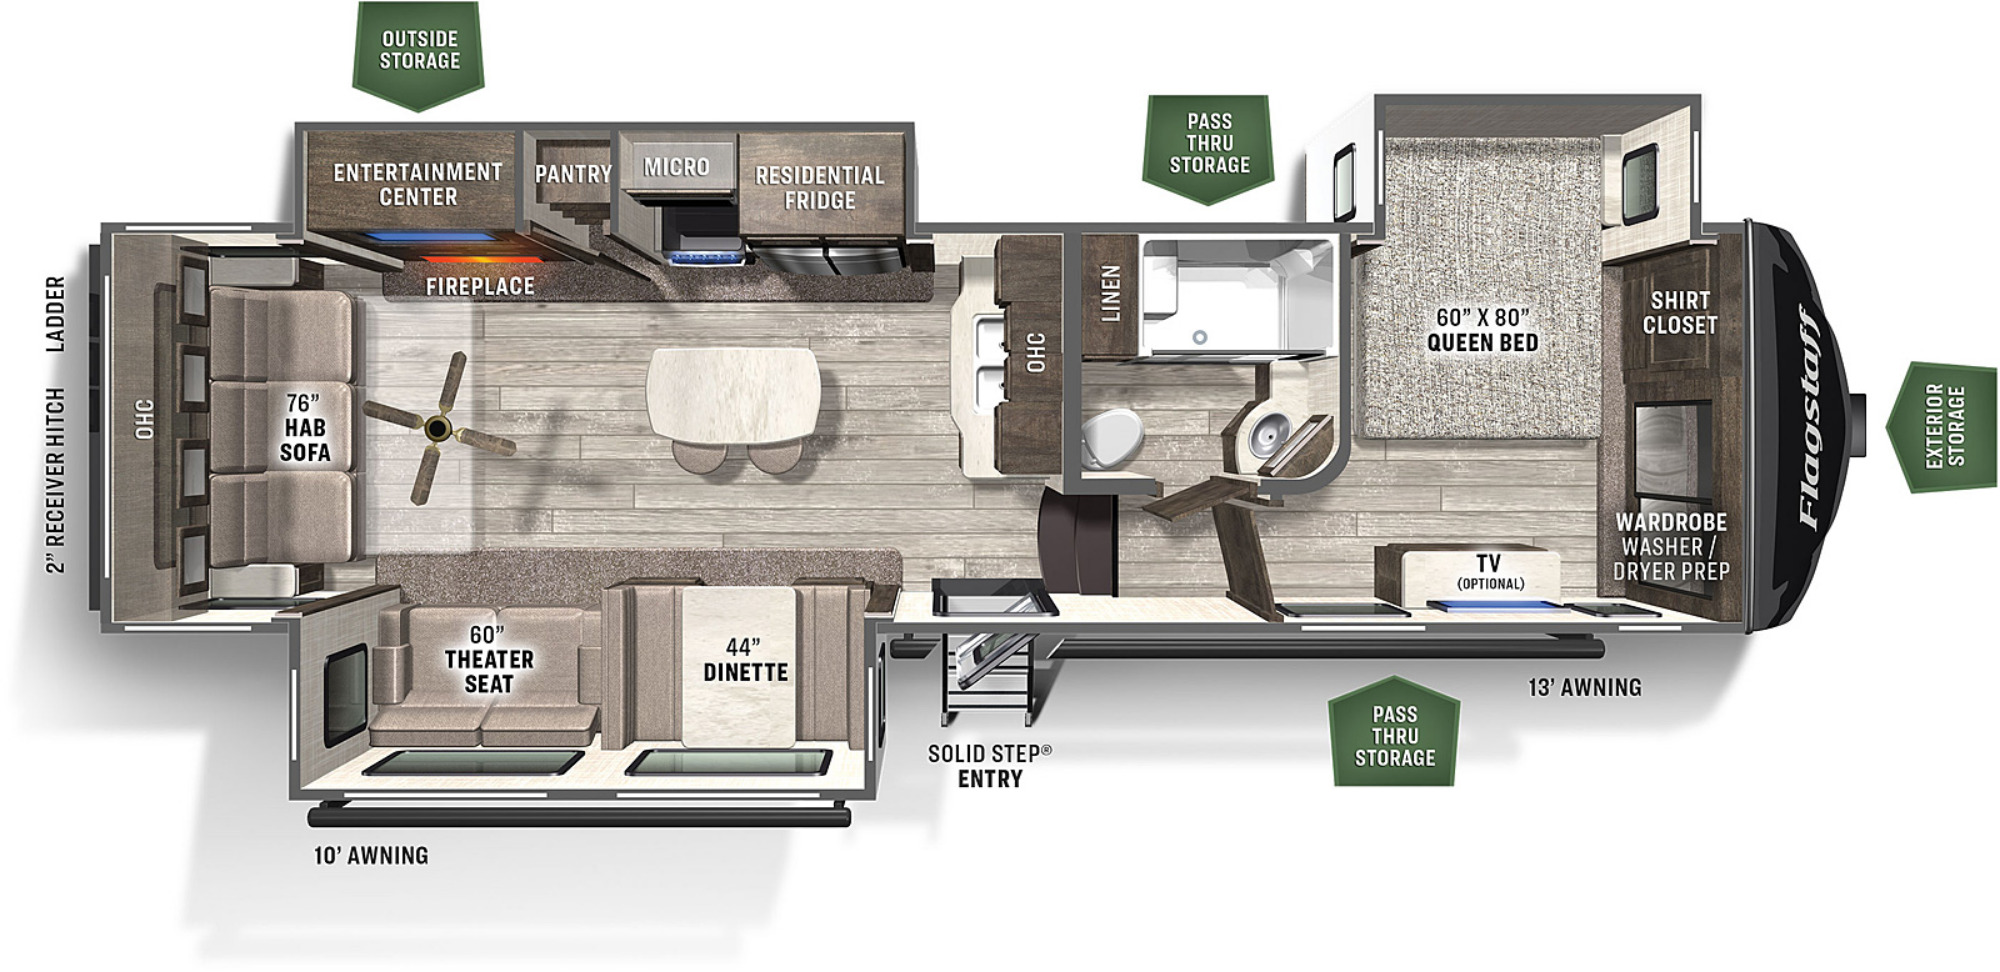 View Floor Plan for 2021 FOREST RIVER FLAGSTAFF SUPER LITE 529IKRL